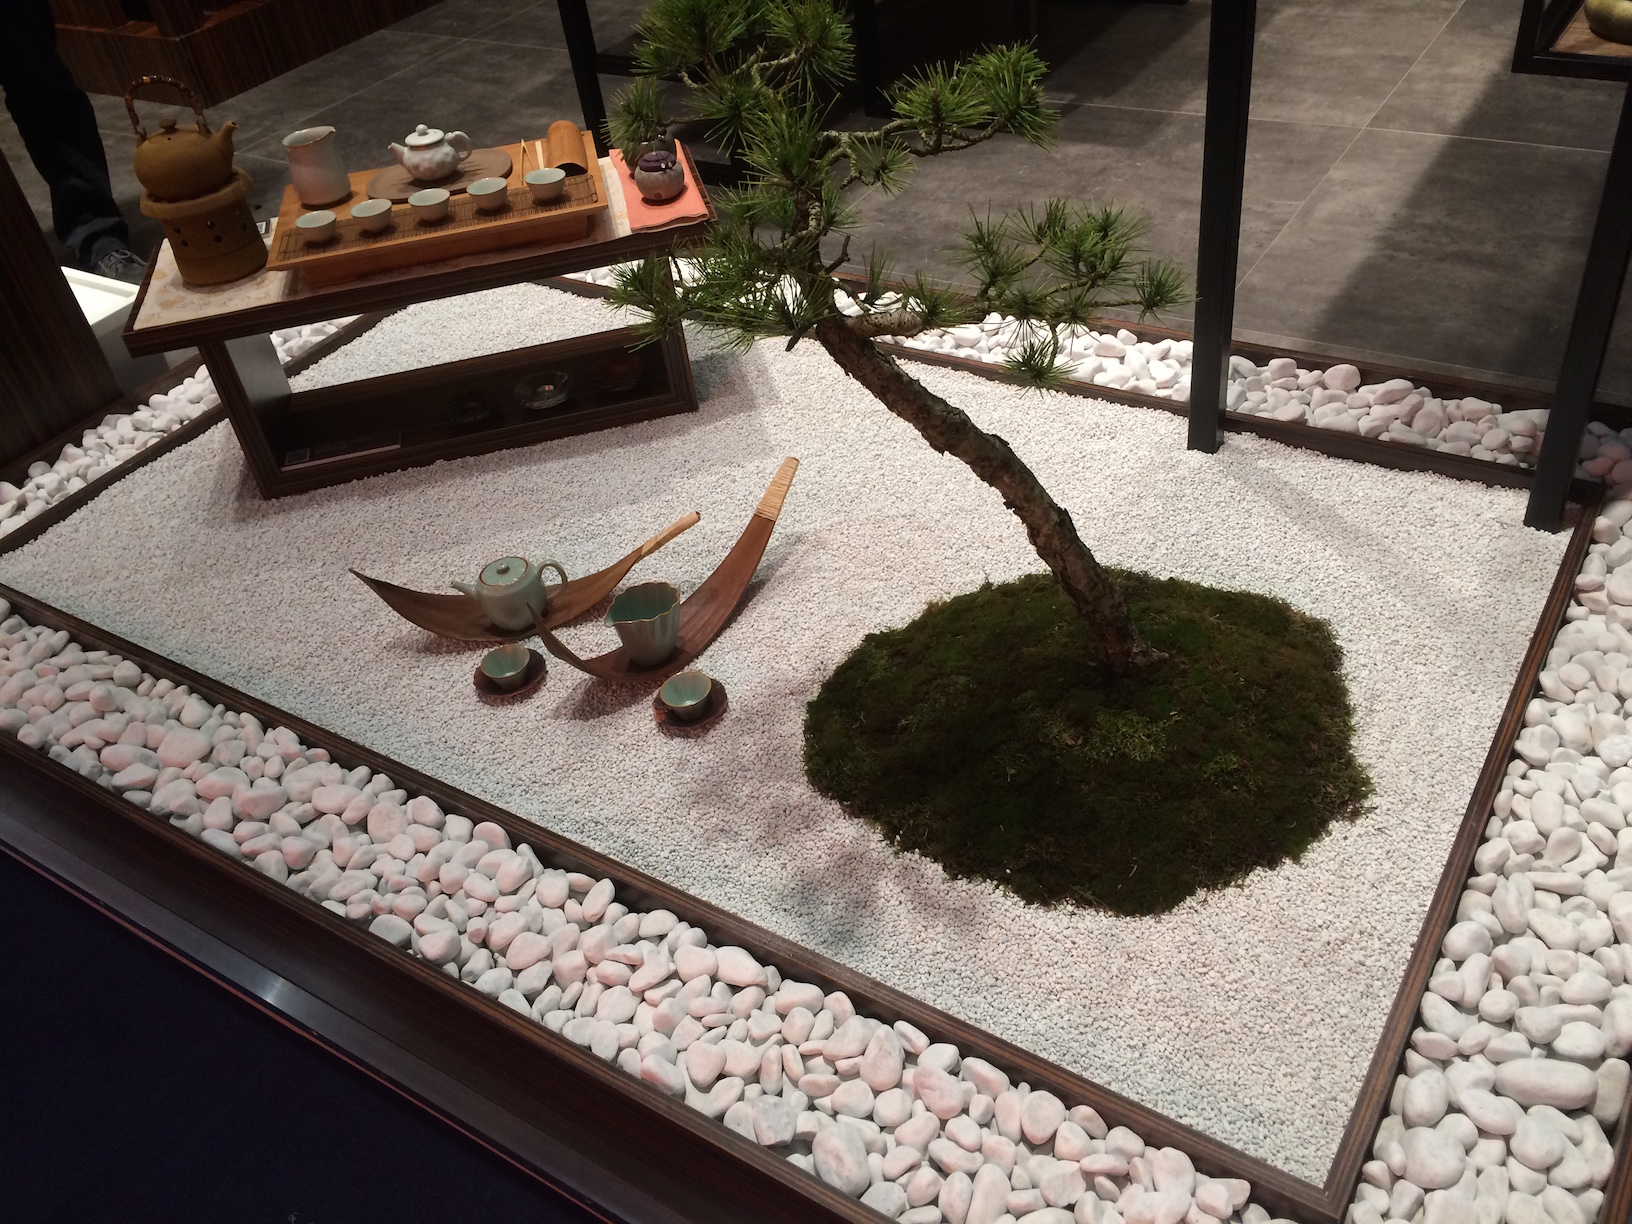 On y tait le salon des arts de la table de francfort for Jardin interieur japonais